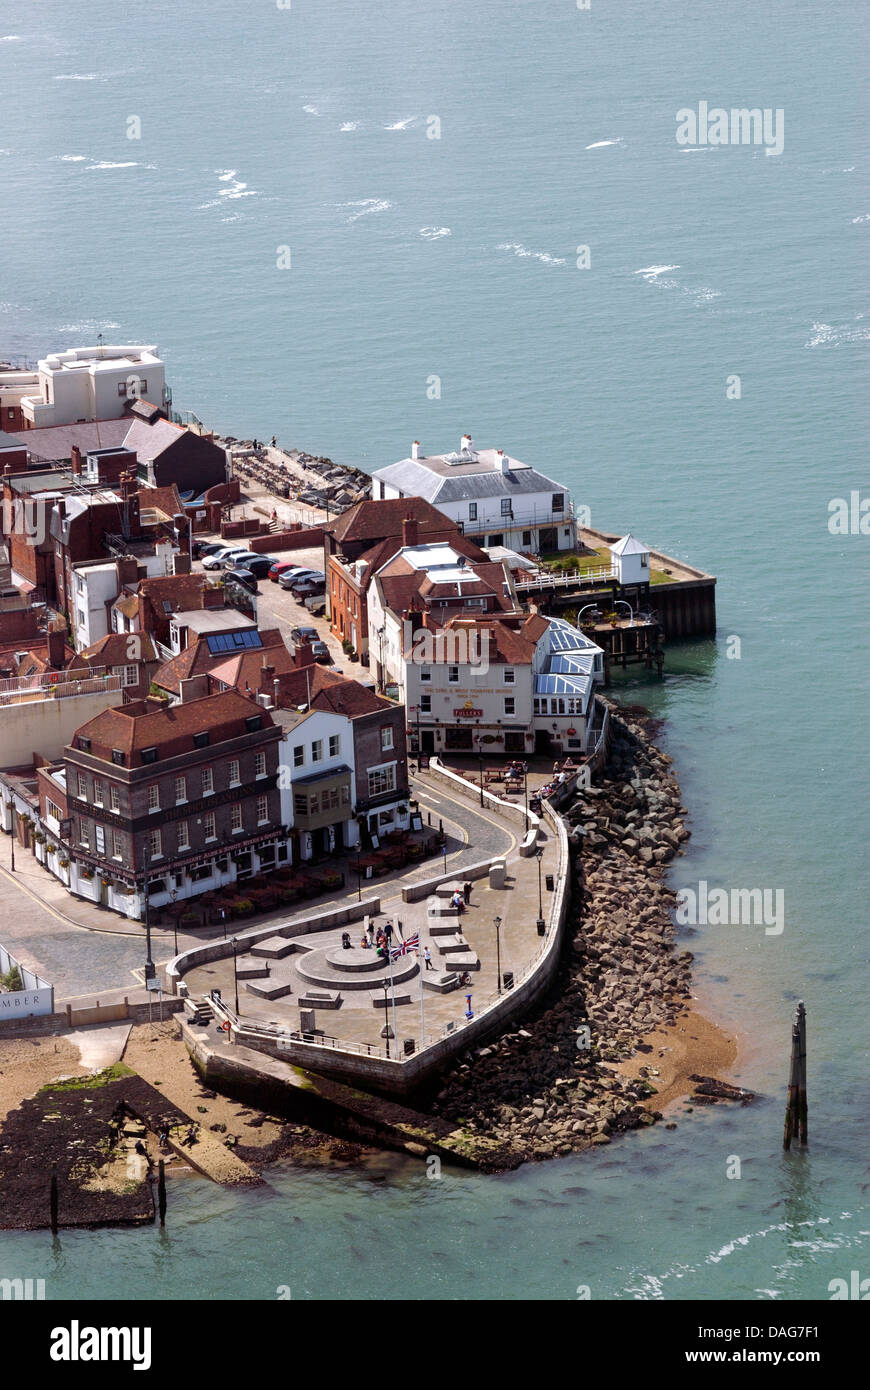 an aerial view of spice island portsmouth harbour old. Black Bedroom Furniture Sets. Home Design Ideas